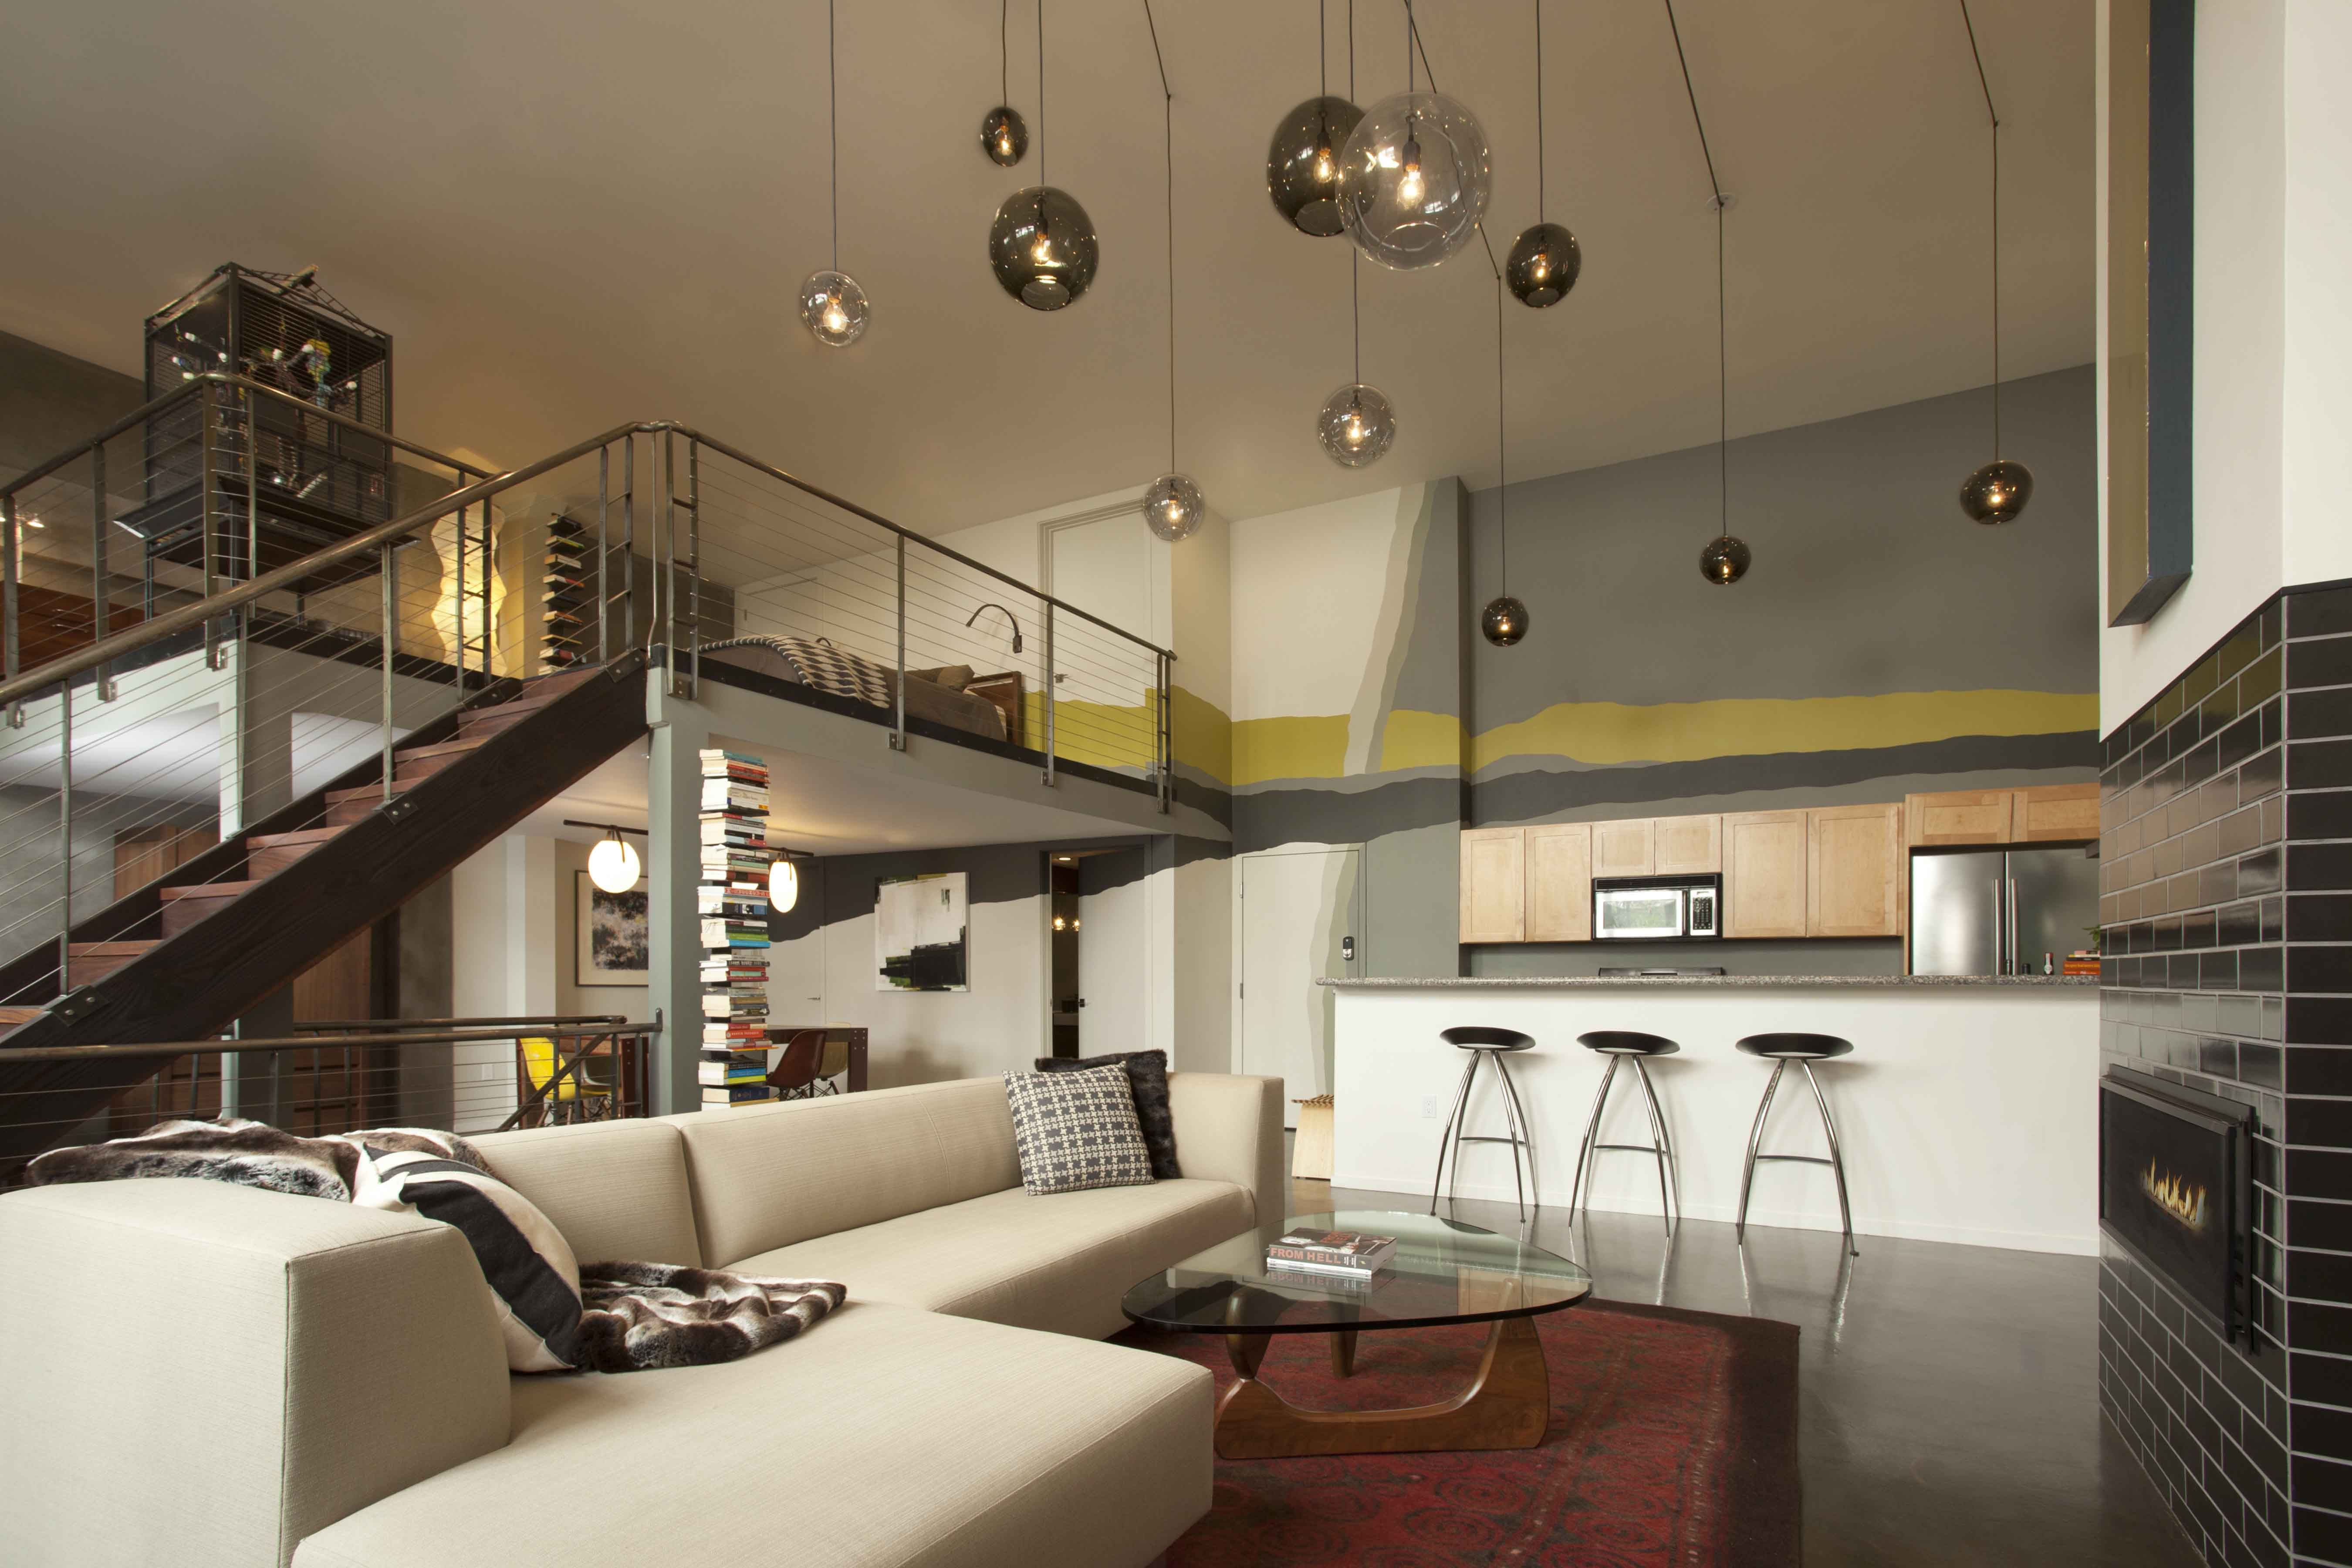 San Francisco loft with doubleheight ceiling and pendant